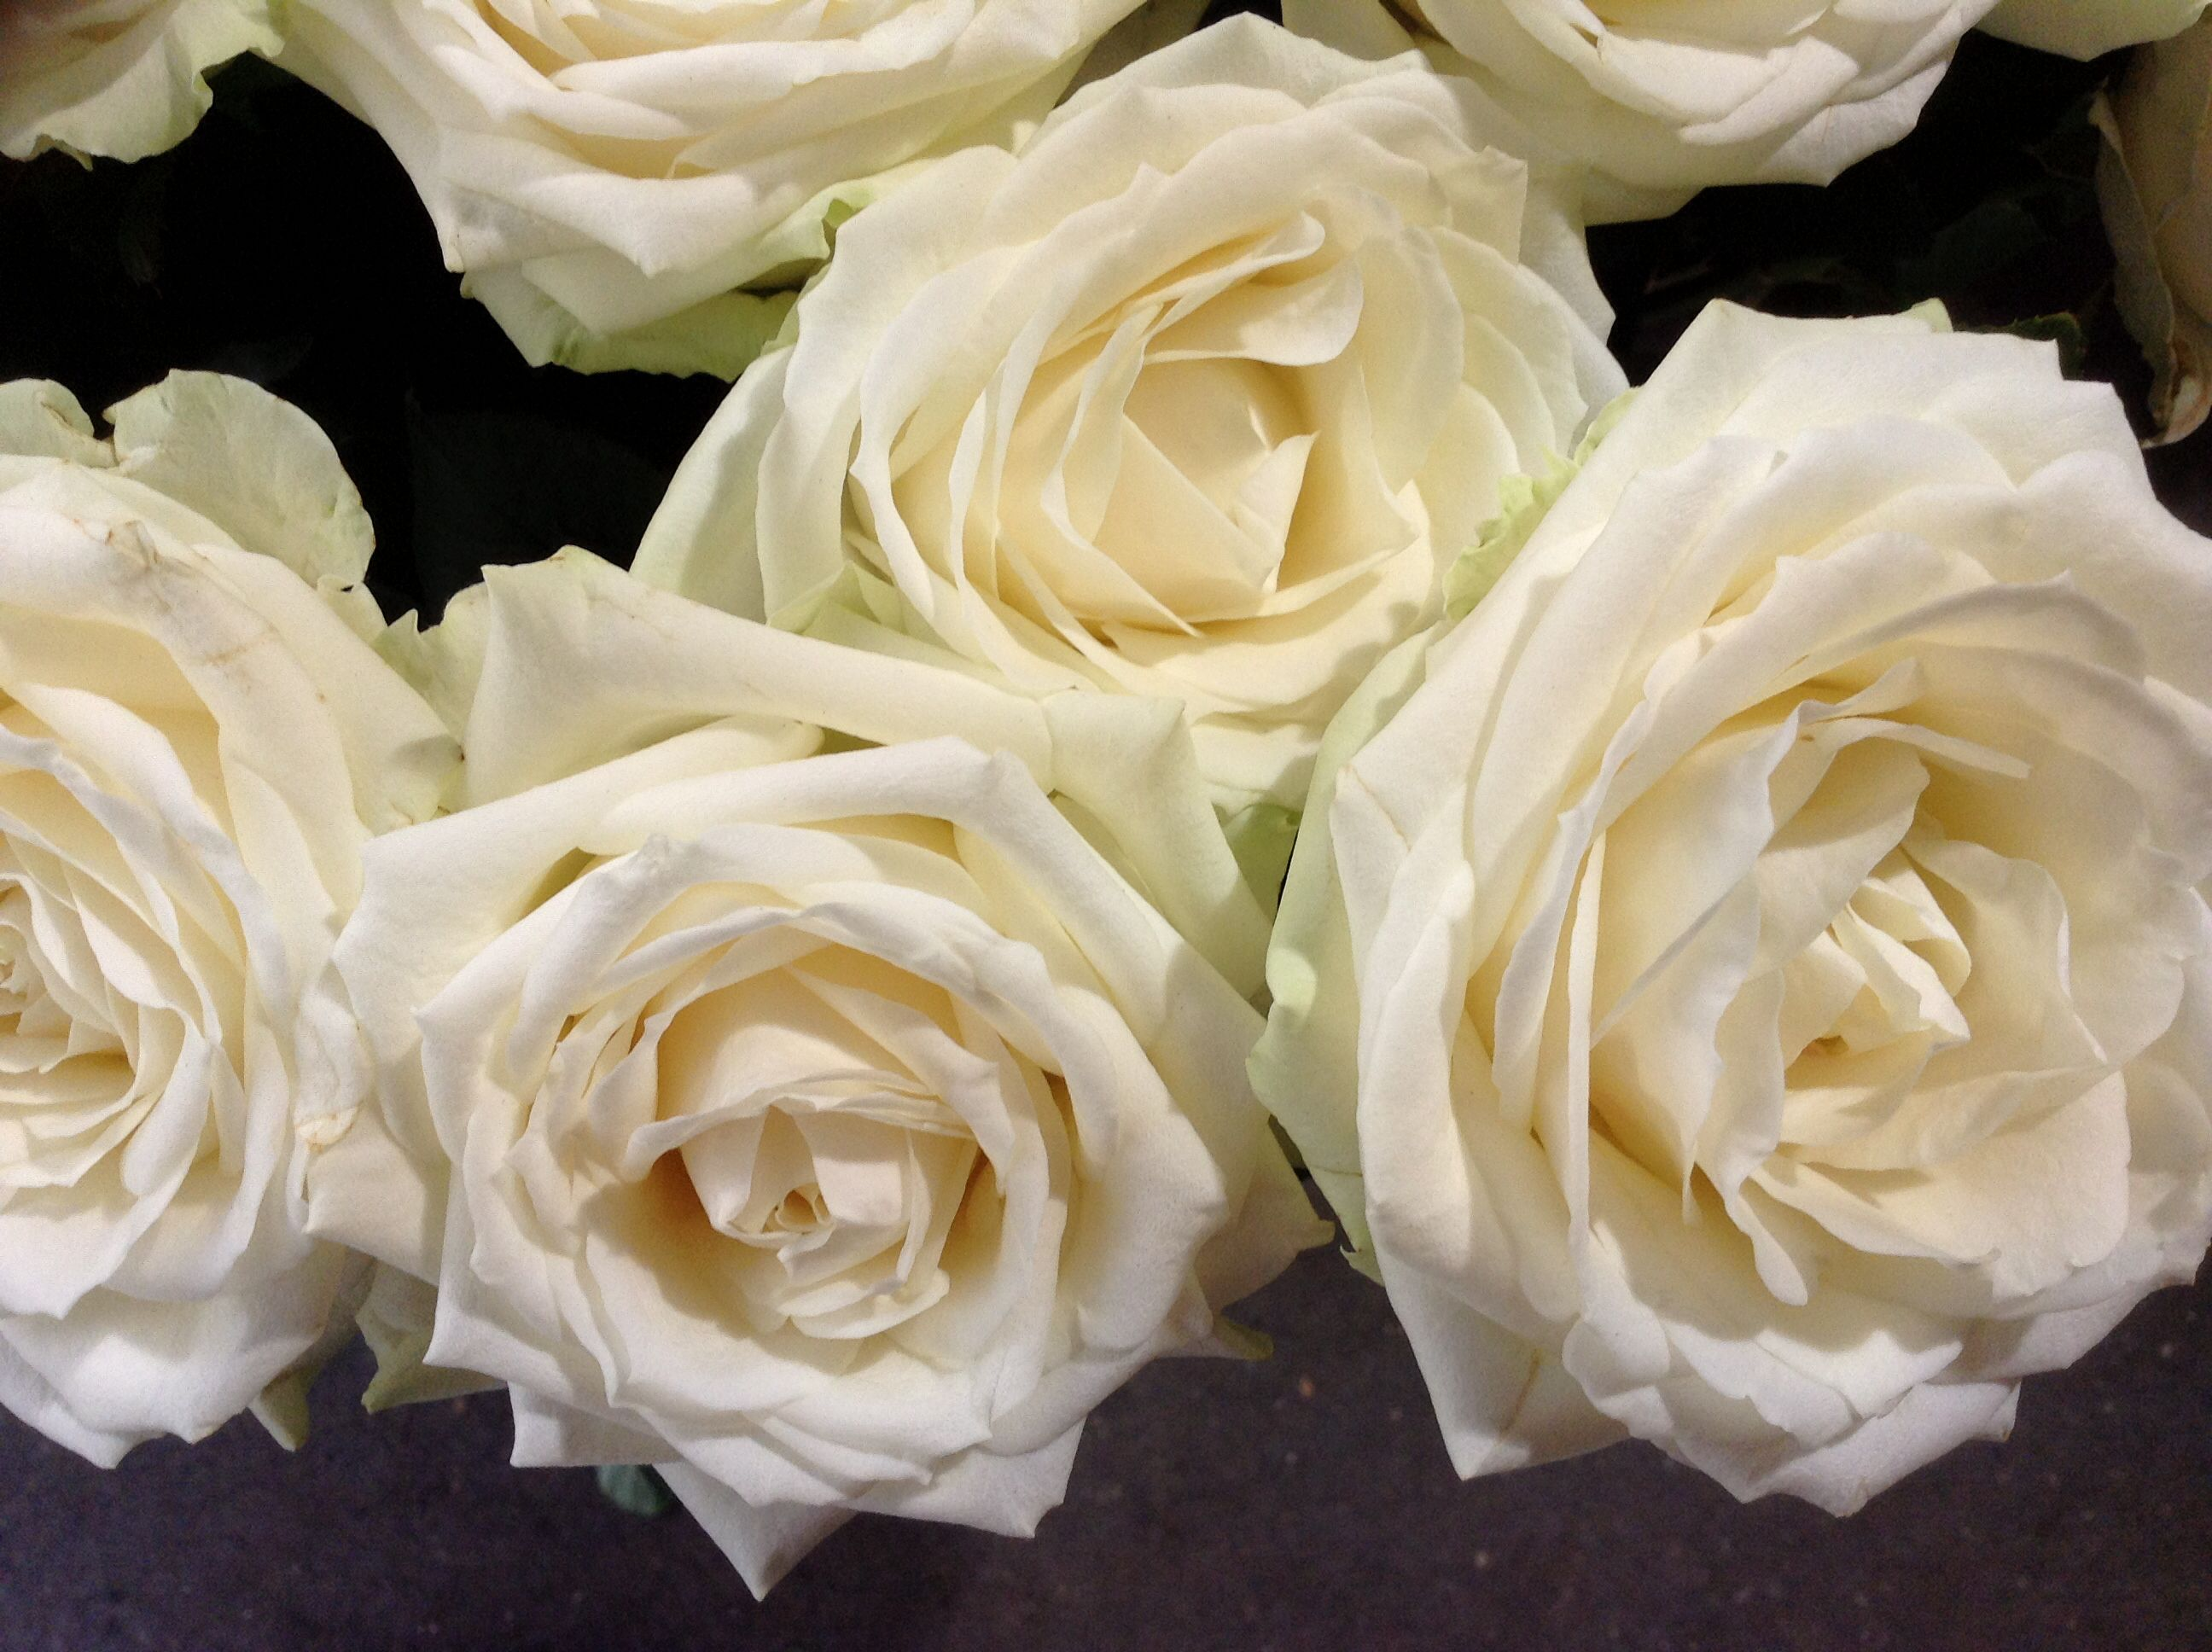 Just beautiful white roses flowers plants that i love